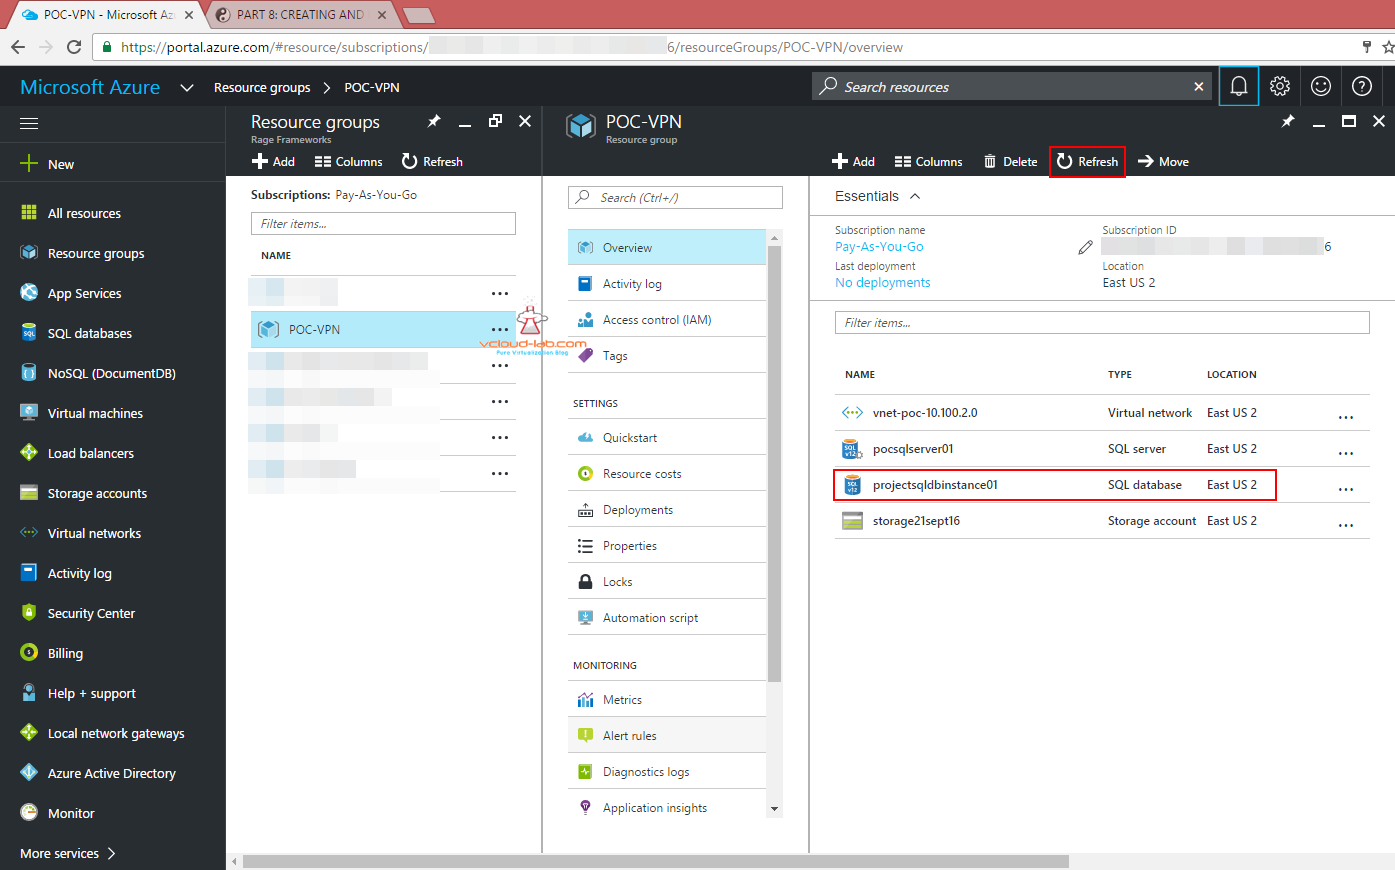 microsoft azure creating and deploying paas sql server database microsoft azure cloud sql database as a services paas sql database instance tables